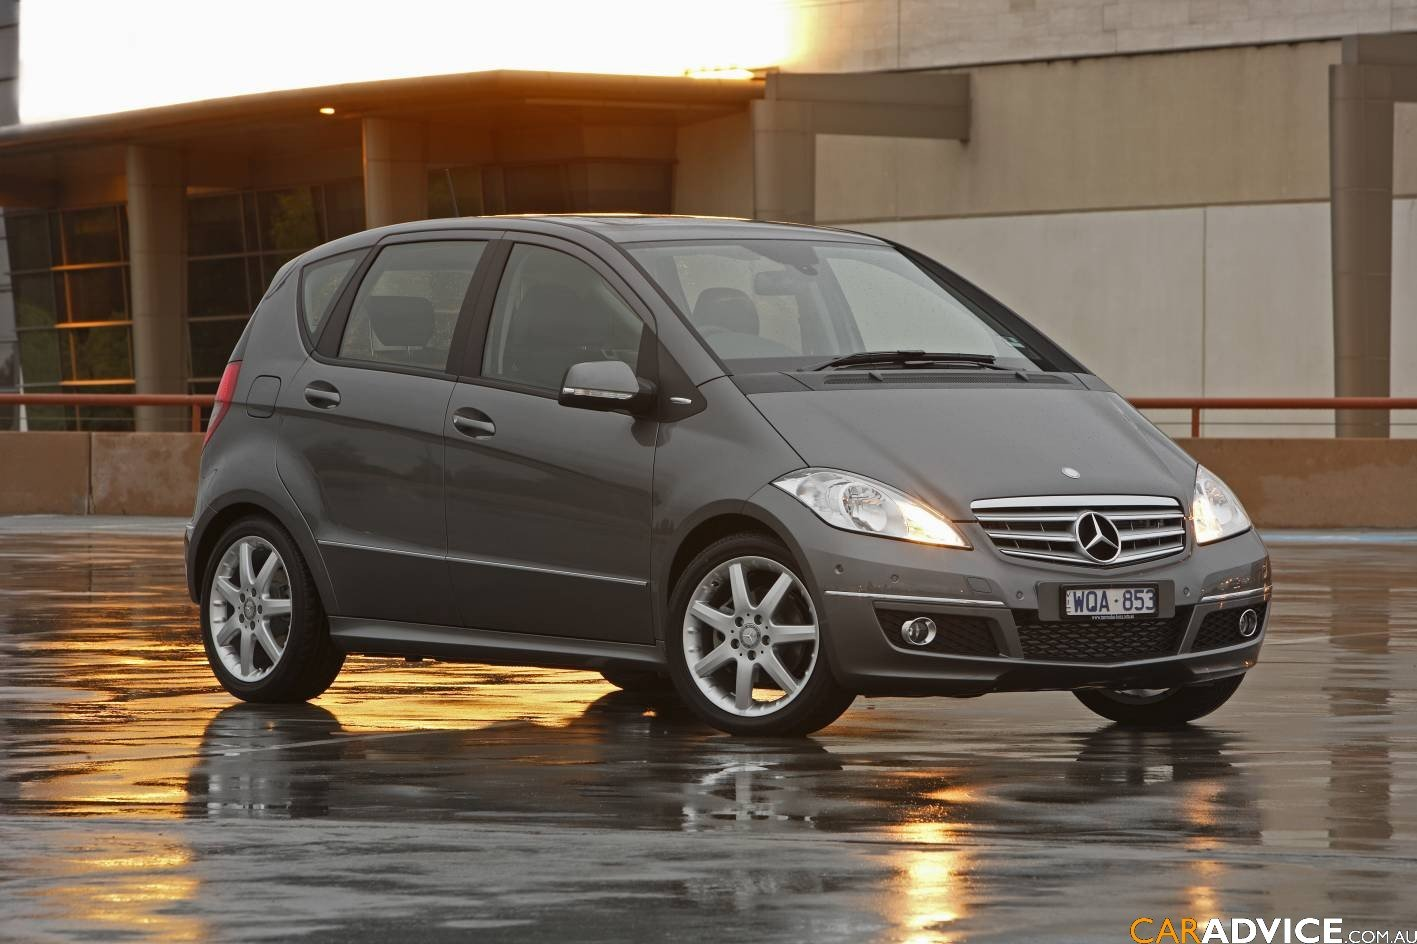 2009 mercedes benz a class range photos 1 of 10